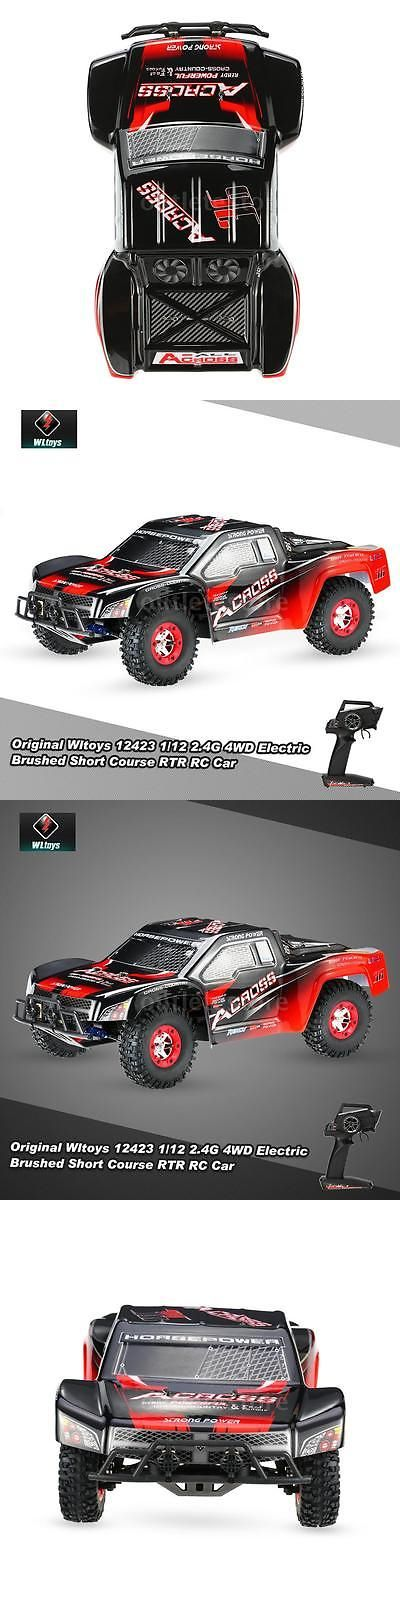 Cars Trucks and Motorcycles 182183: 2017 Original Wltoys 12423 1 12 2.4G 4Wd Brushed Short Course Rtr Rc Car Super -> BUY IT NOW ONLY: $71.68 on eBay!